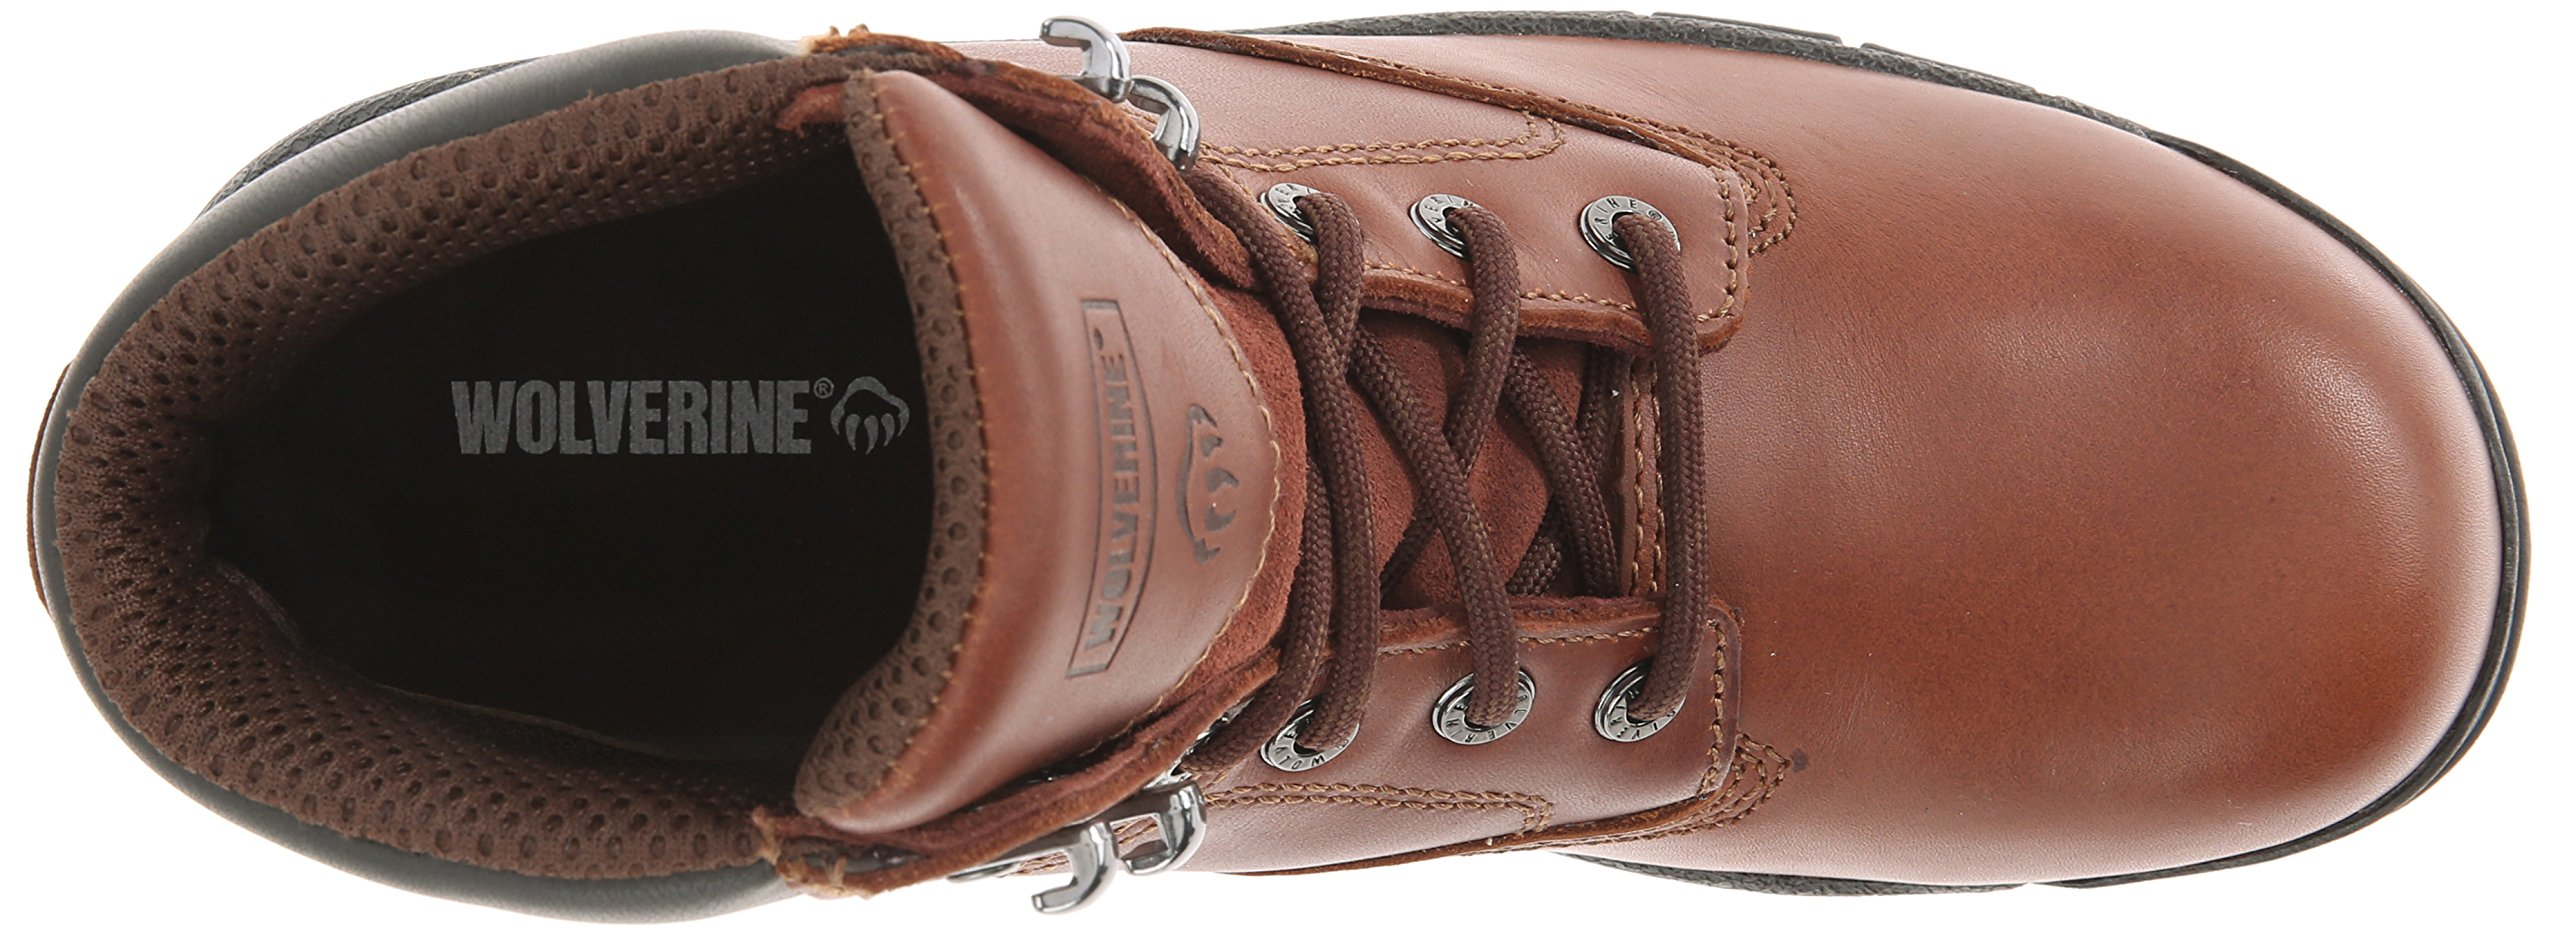 Wolverine Women's Harrison WMS 6'' LACE UP-W, Brown, 10 M US by Wolverine (Image #8)